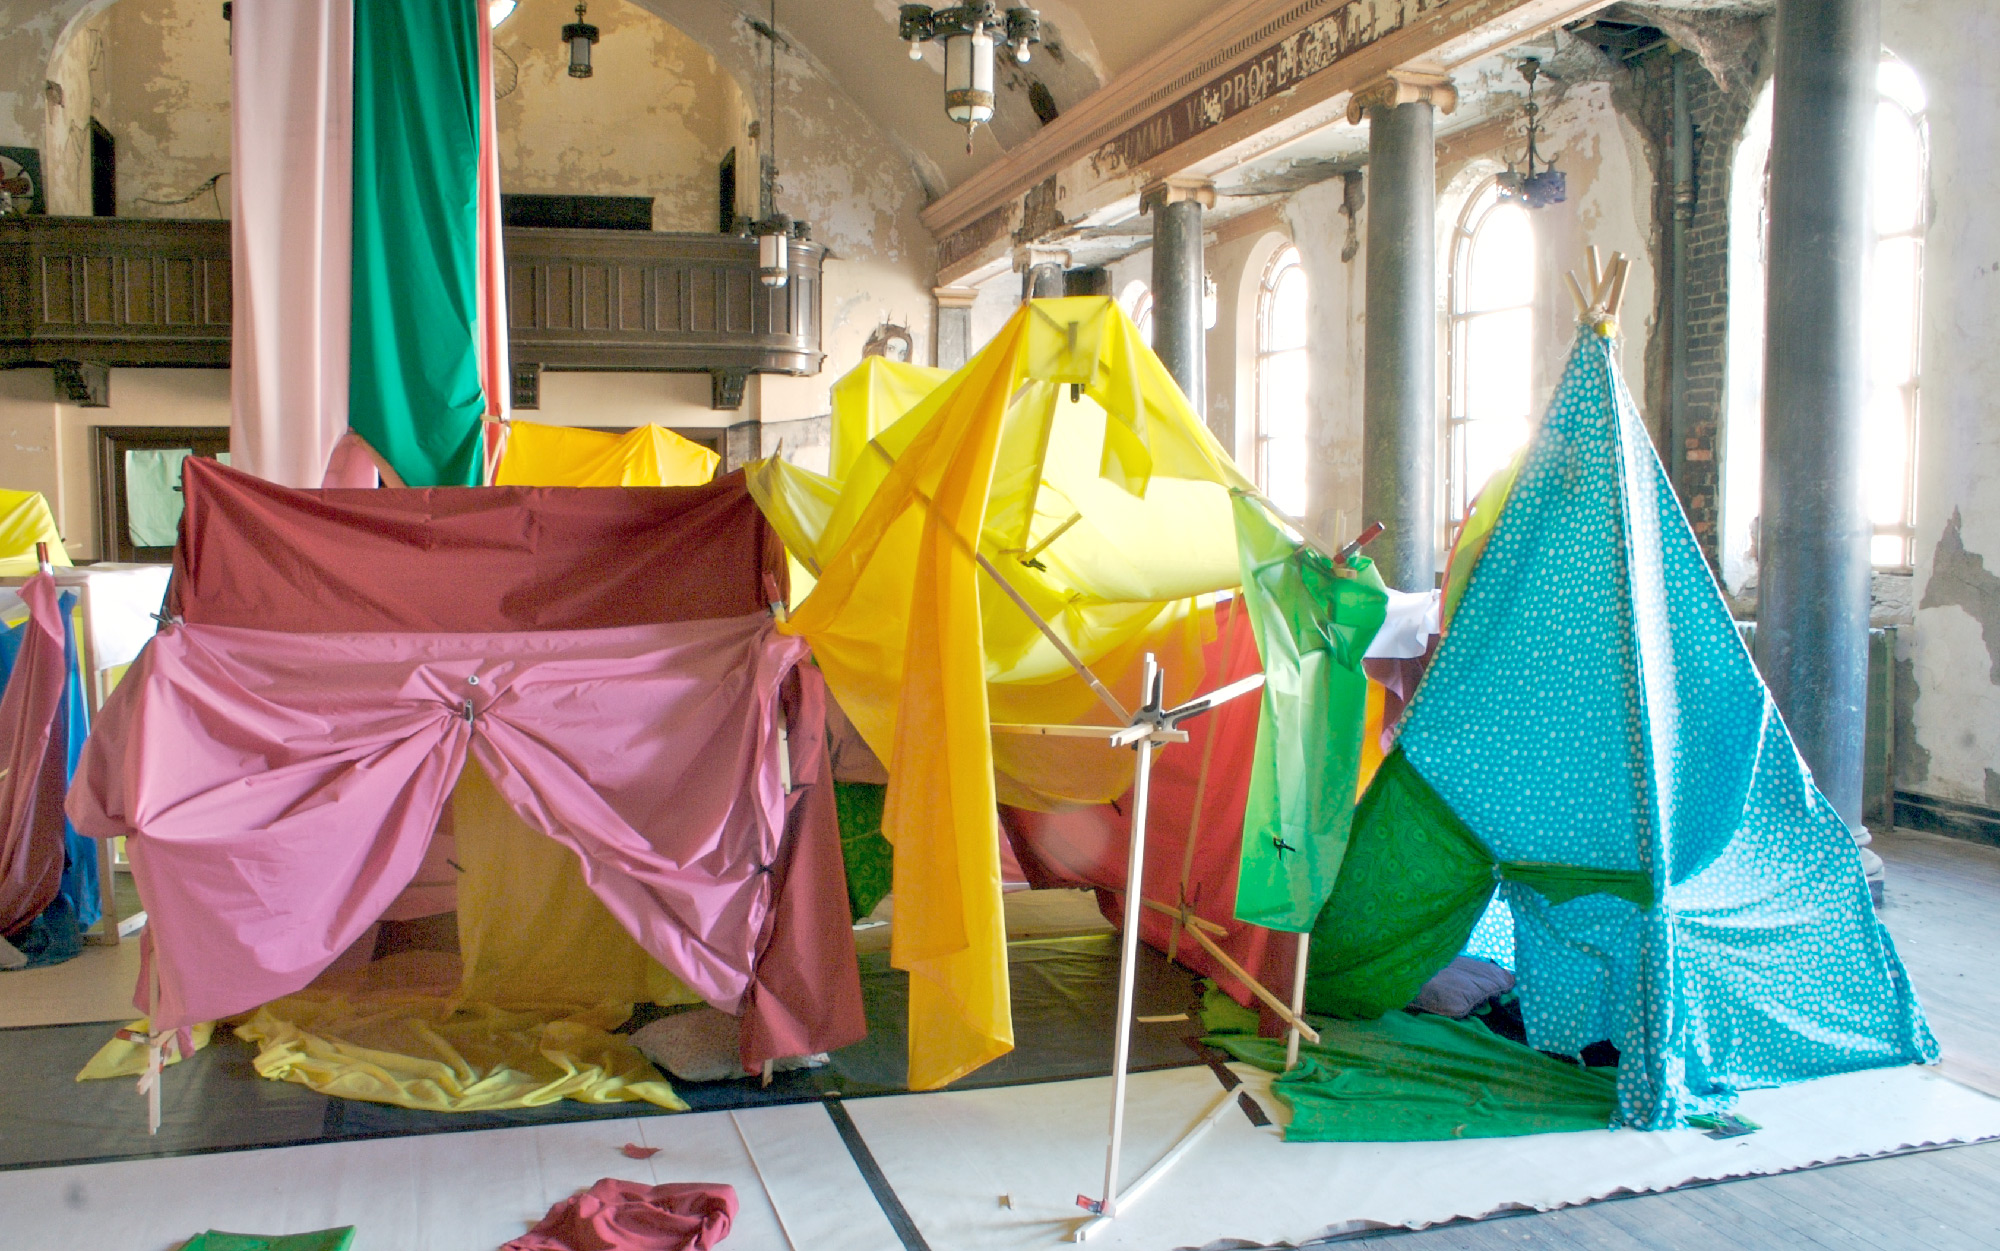 ... gallery-image ... & We Are Architects u203a Building One: Blanket Fort City